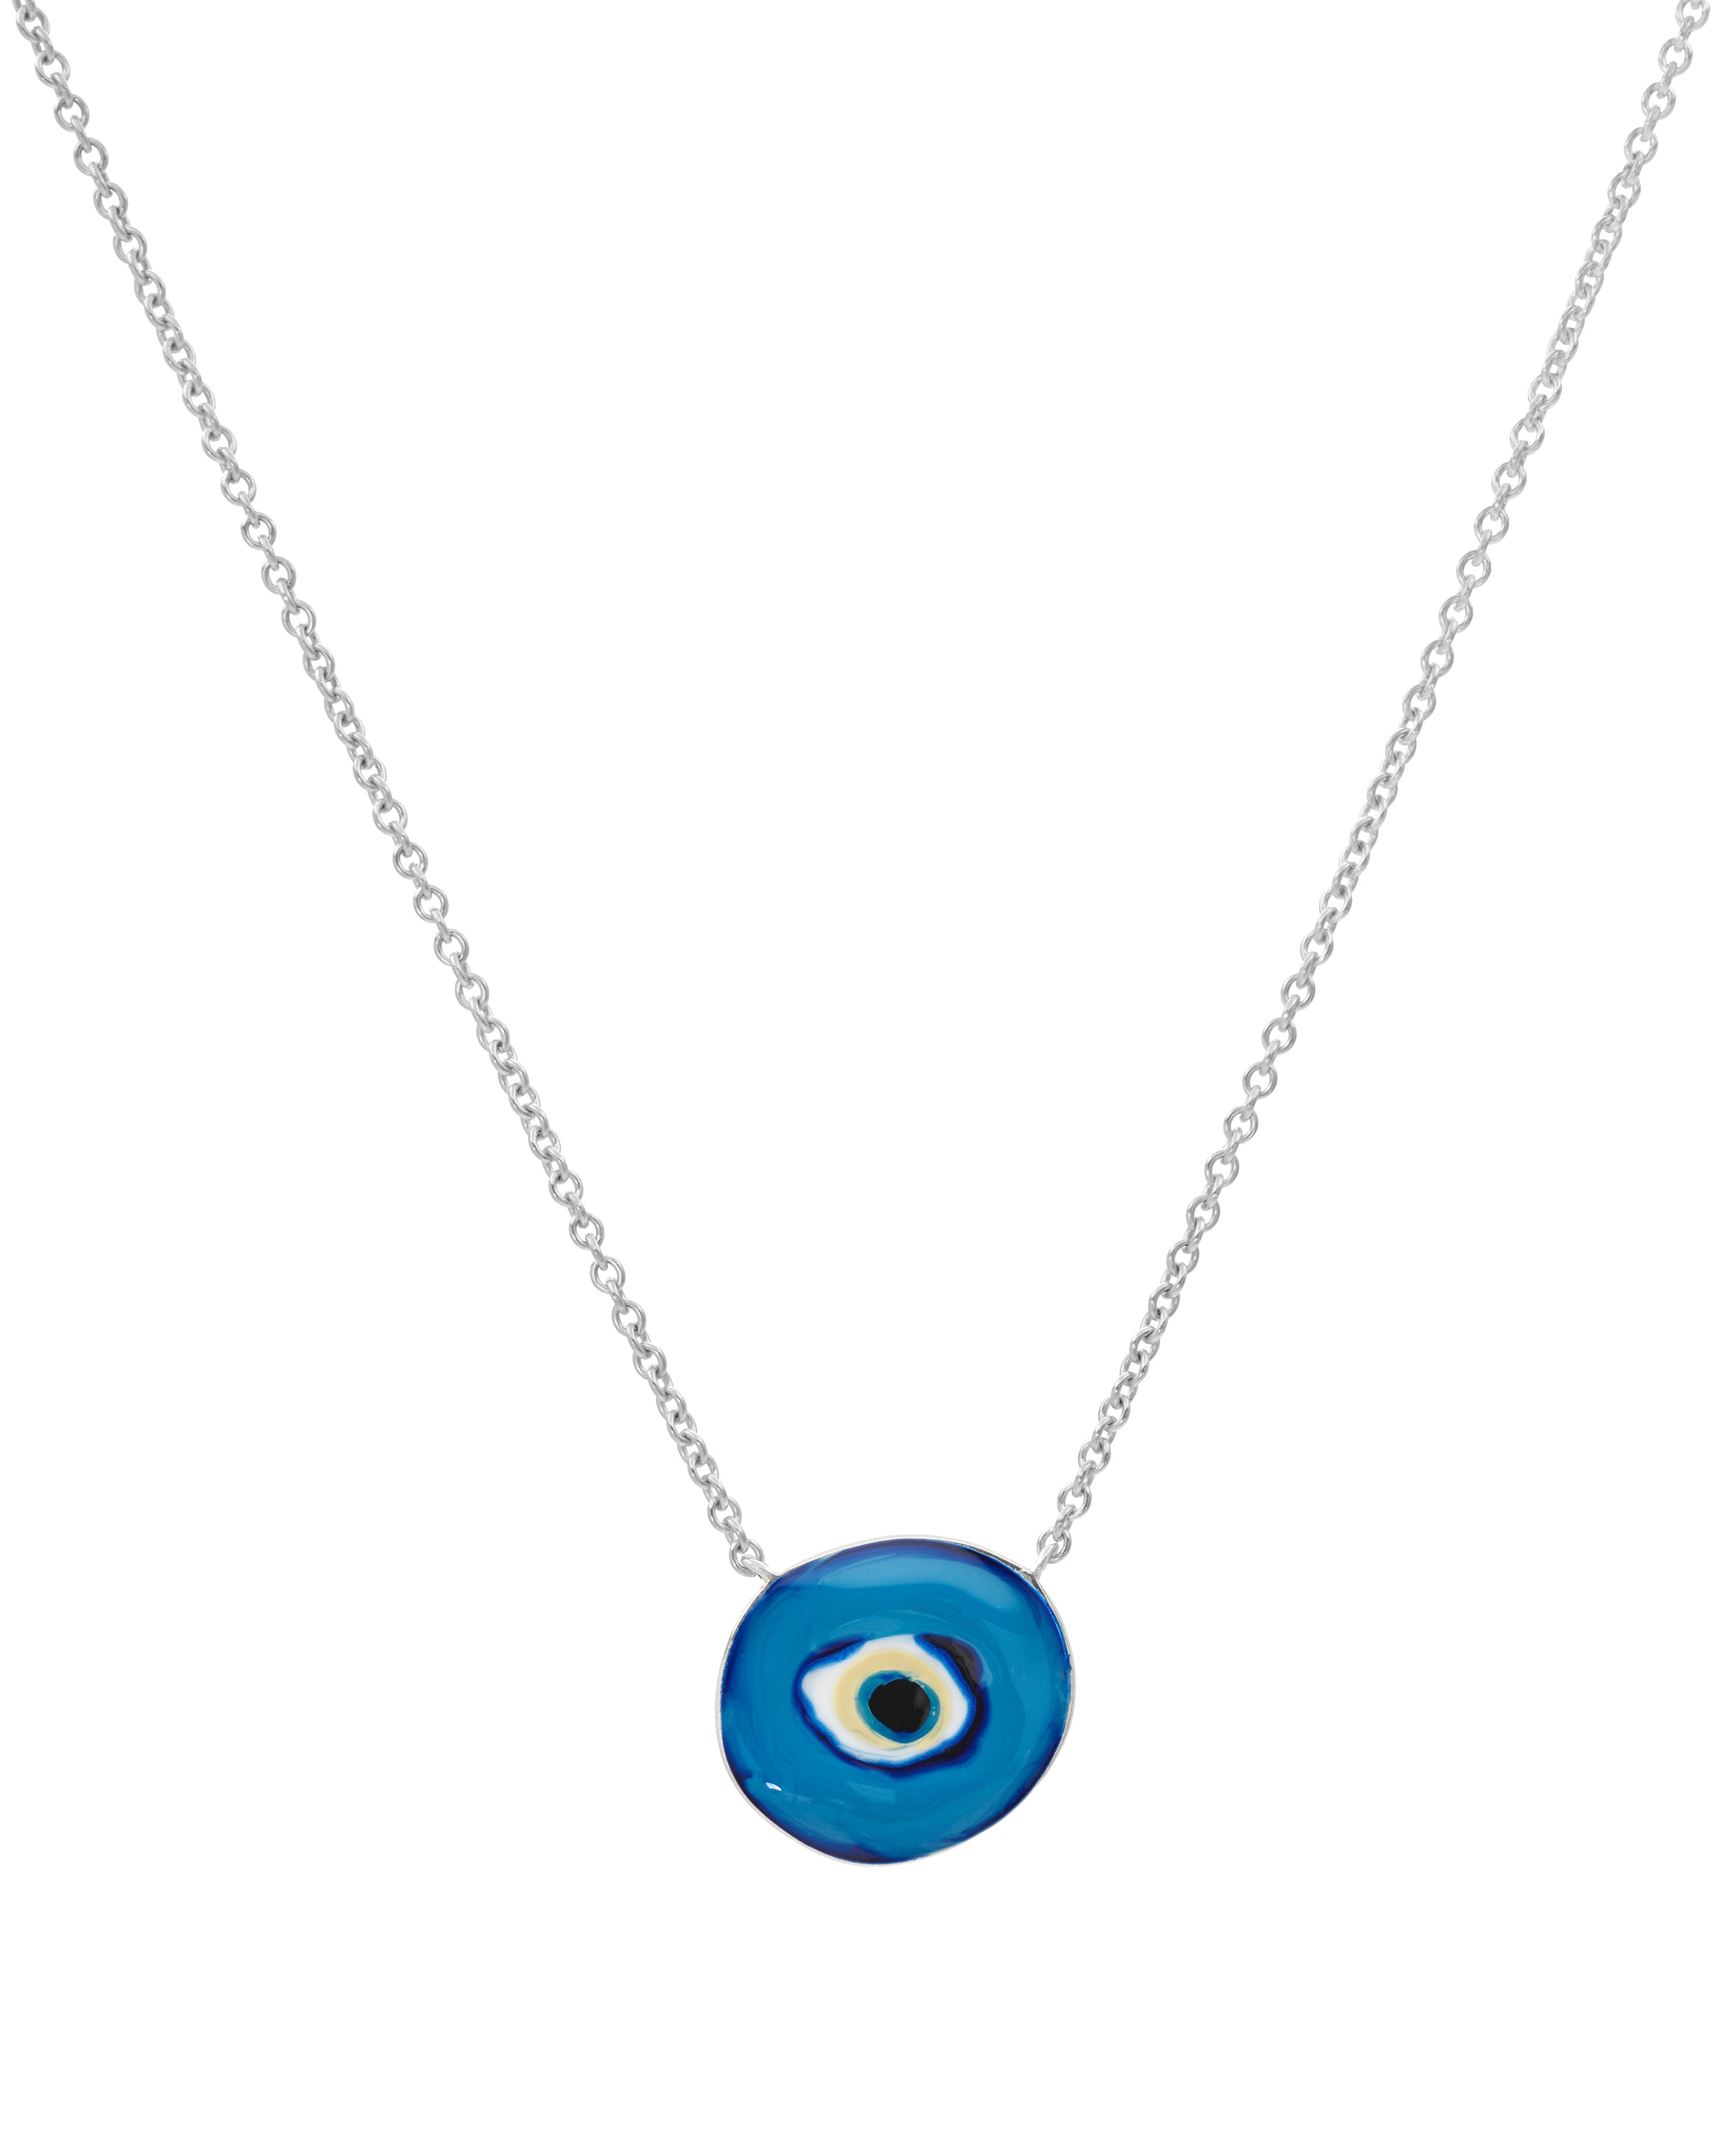 IRINI EVIL EYE, ENAMEL SWIRL OF PROTECTION CLOSE TO YOUR HEART, NECKLACE,STERLING SILVER CHAIN, SILVER ENAMEL CHARM, PROTECTION